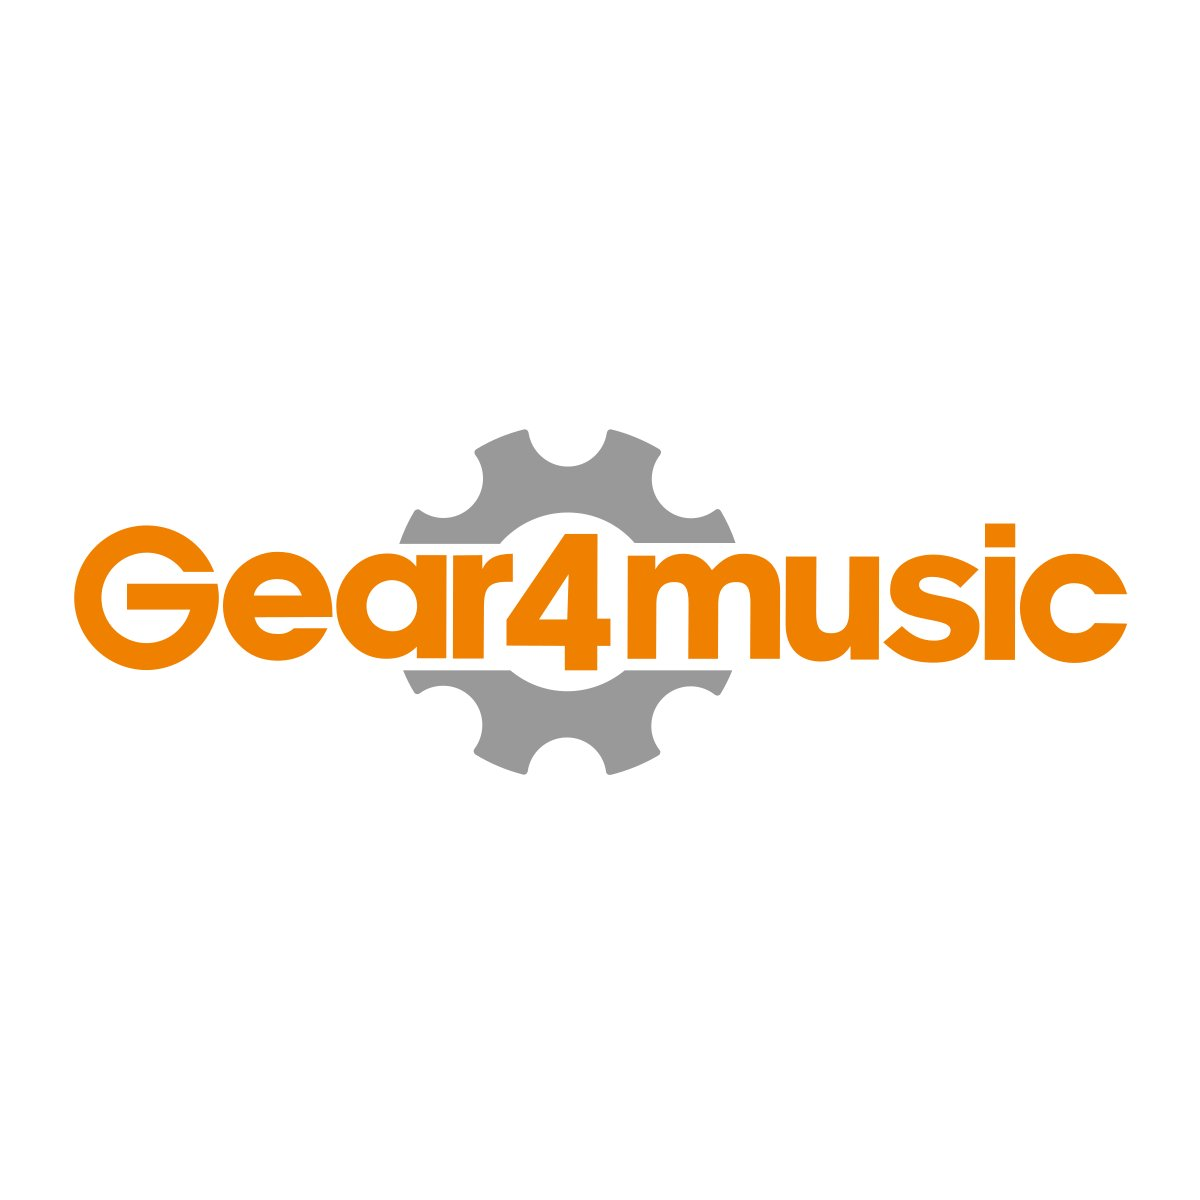 CZ3 Conjunto de Pratos de Gear4music